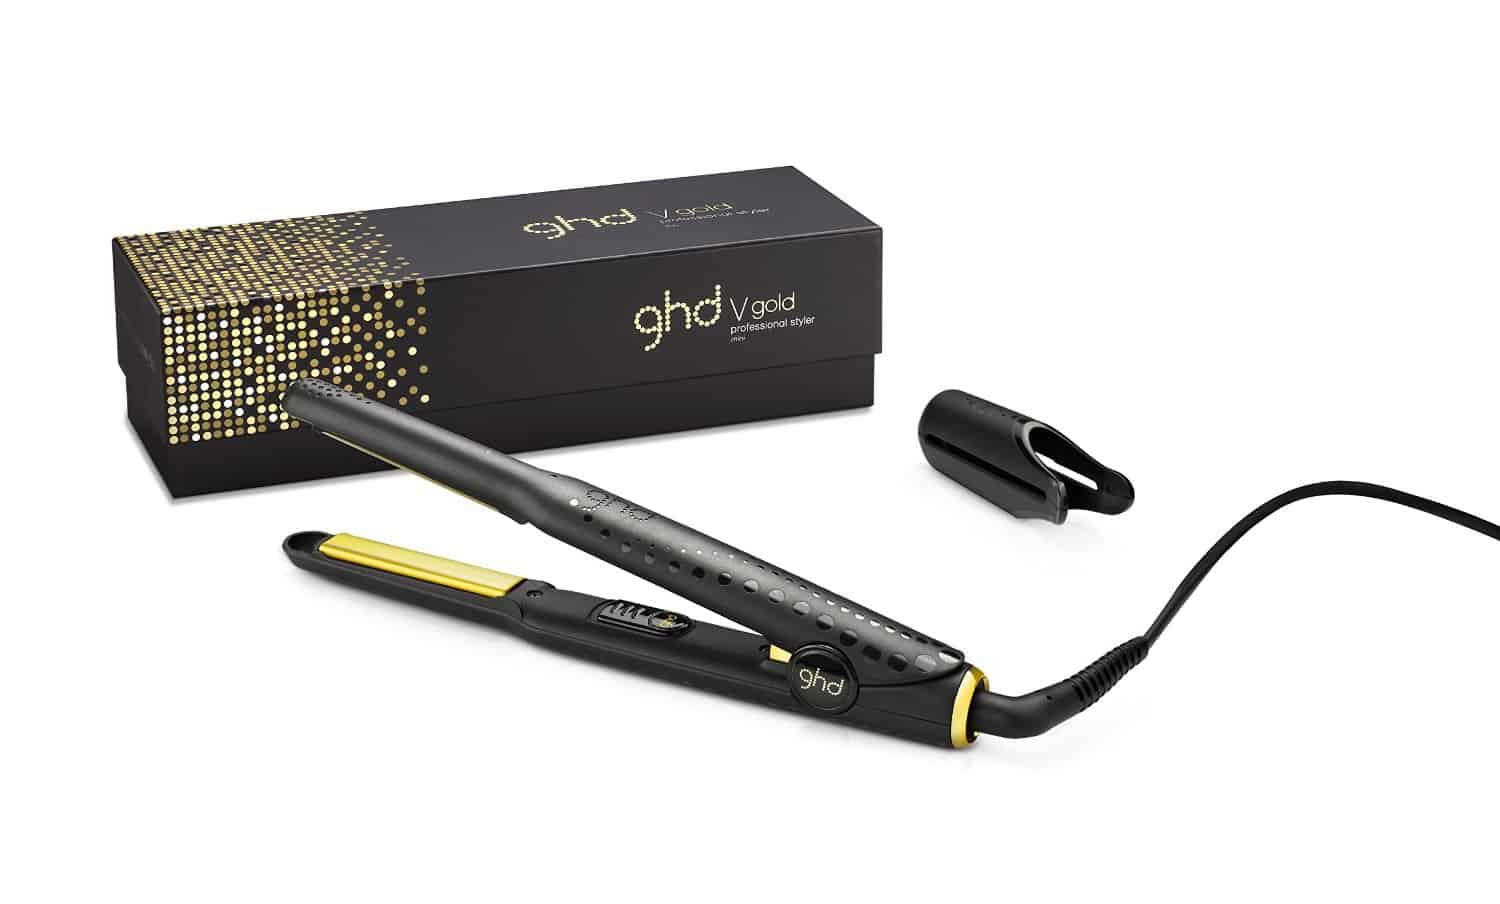 ghd v gold mini pic